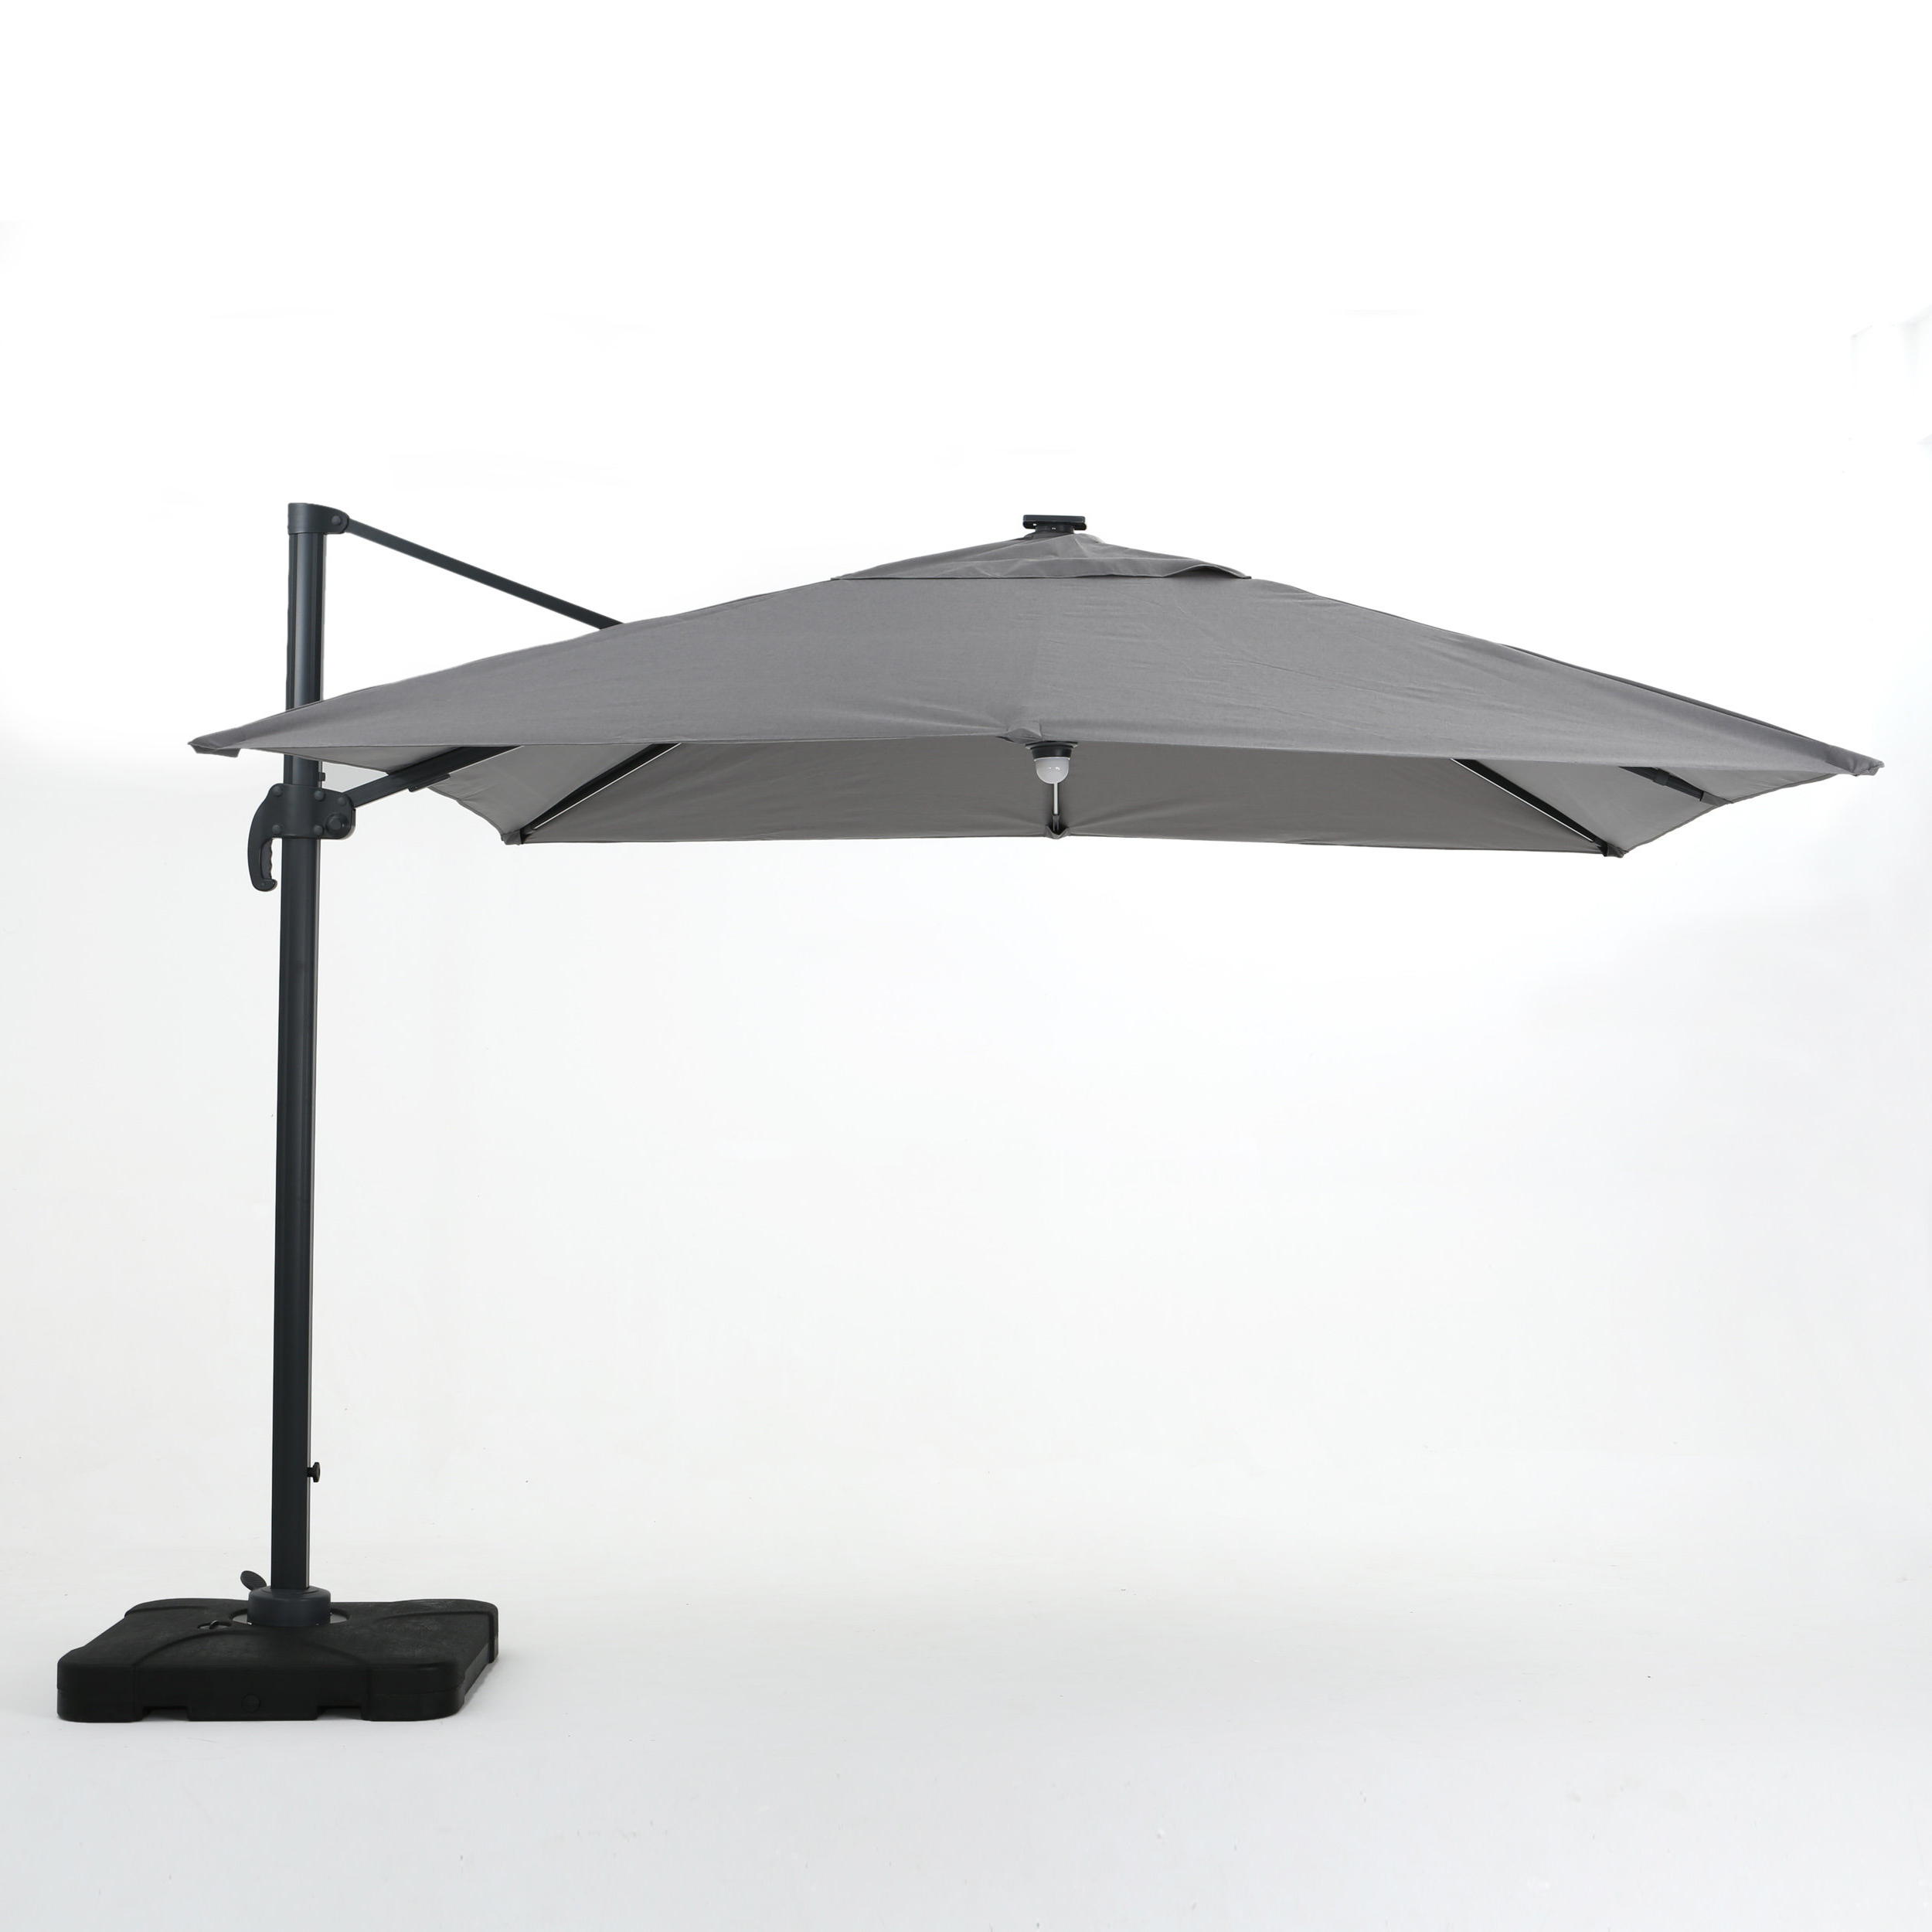 Widely Used Jendayi Square Cantilever Umbrella Pertaining To Frederick Square Cantilever Umbrellas (View 20 of 20)